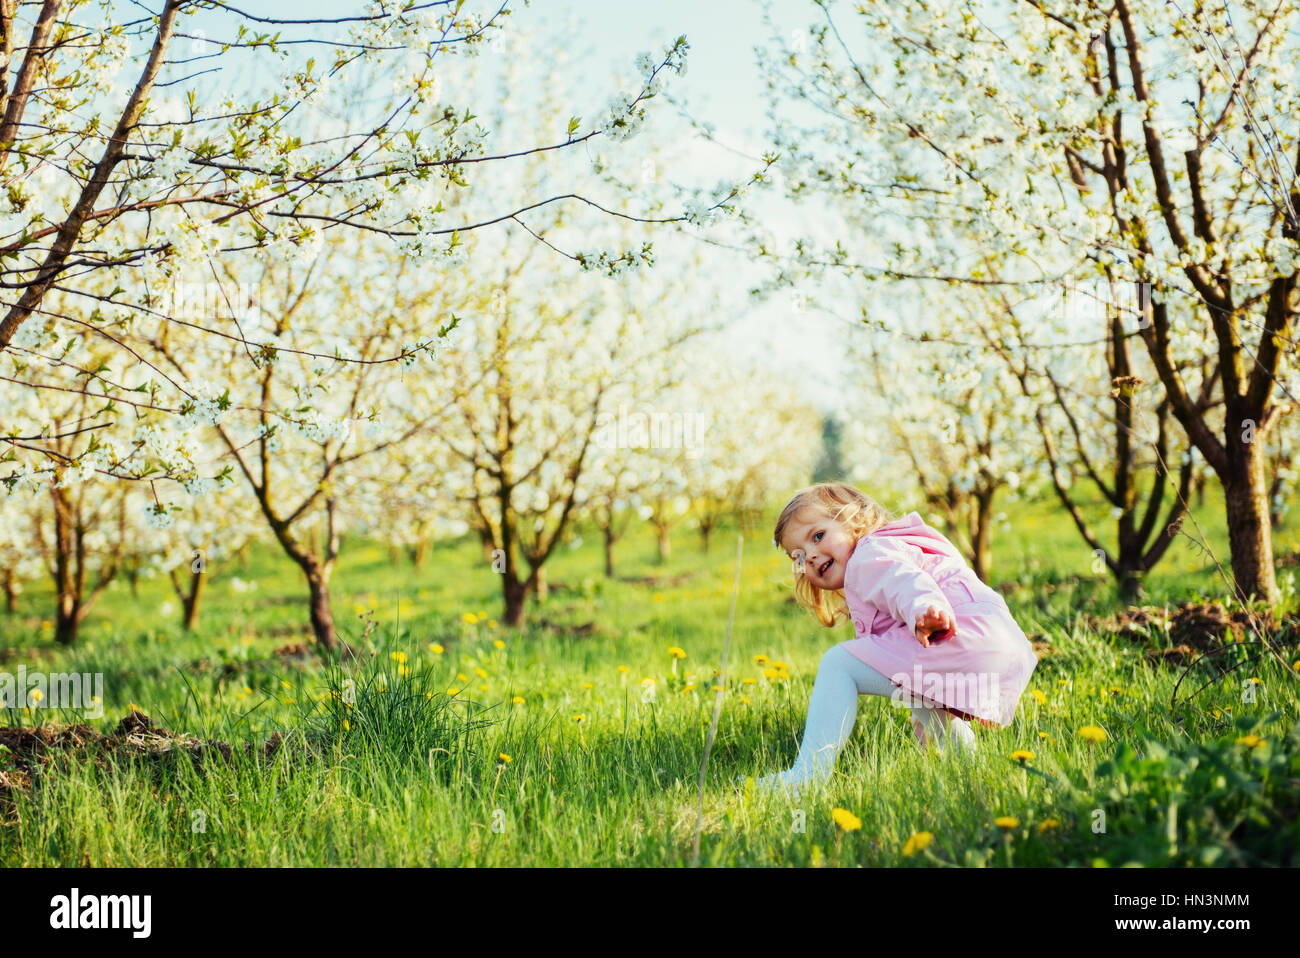 child running outdoors blossom trees. Art processing and retouch - Stock Image